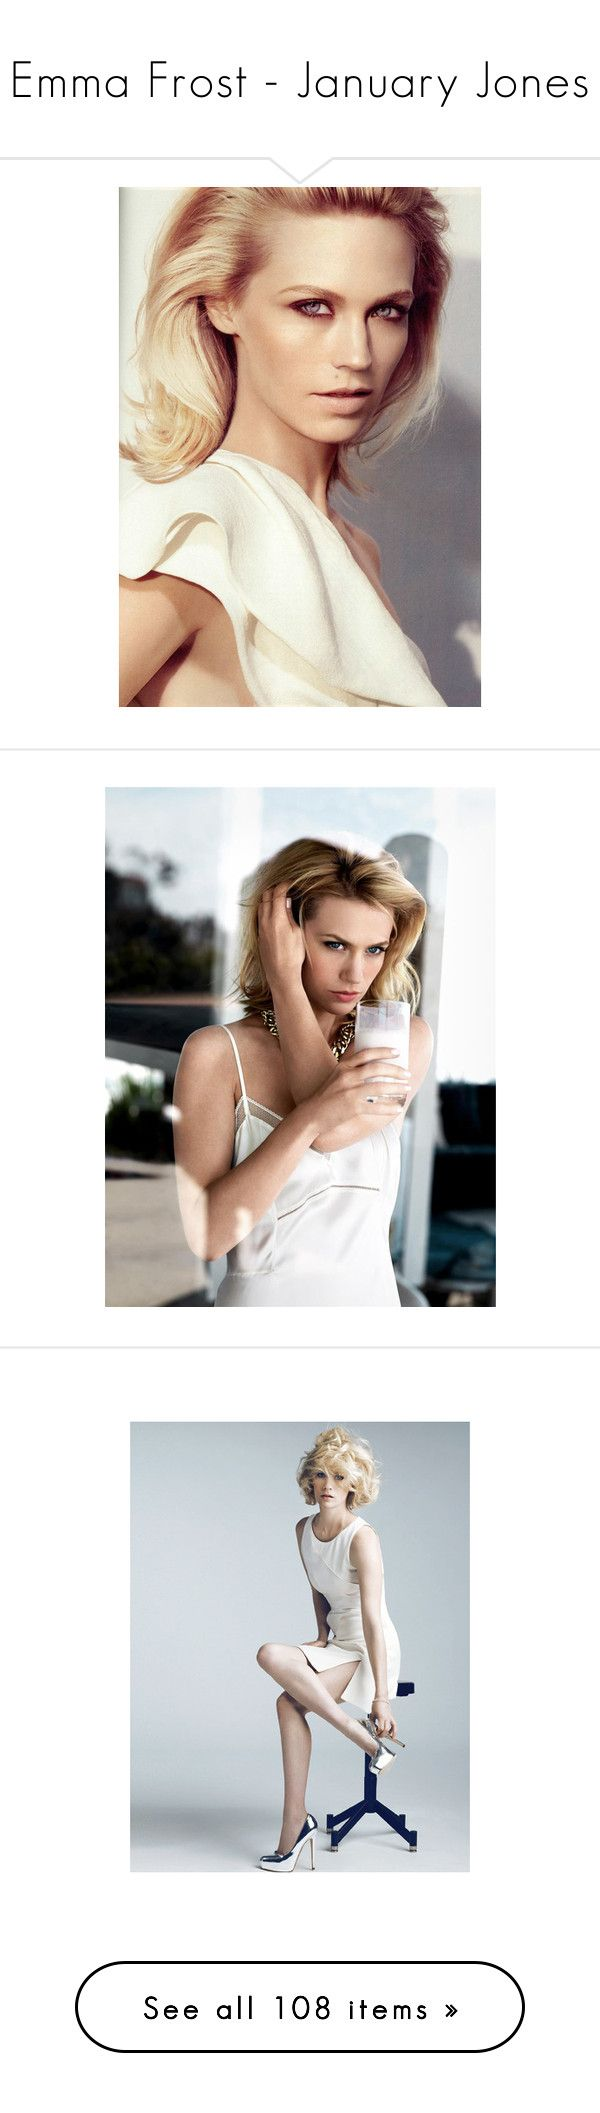 """""""Emma Frost - January Jones"""" by carla-turner-bastet ❤ liked on Polyvore featuring models, people, ad campaign, january jones, versace, editorials, covers, backgrounds, black and white and image"""